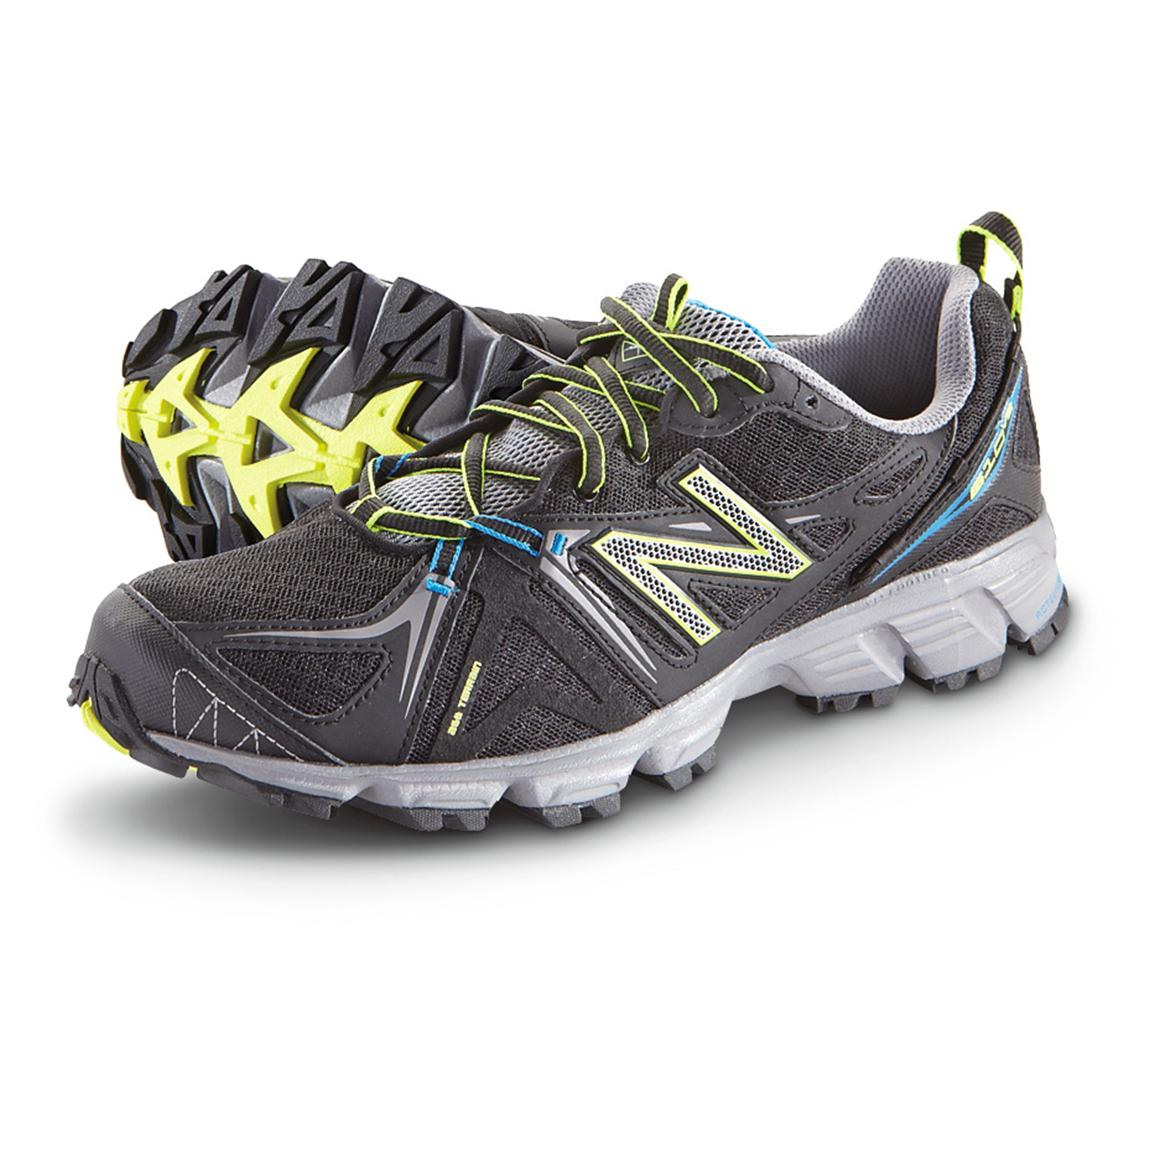 Men's New Balance® 610v2 Trail Running Shoes, Black / Silver